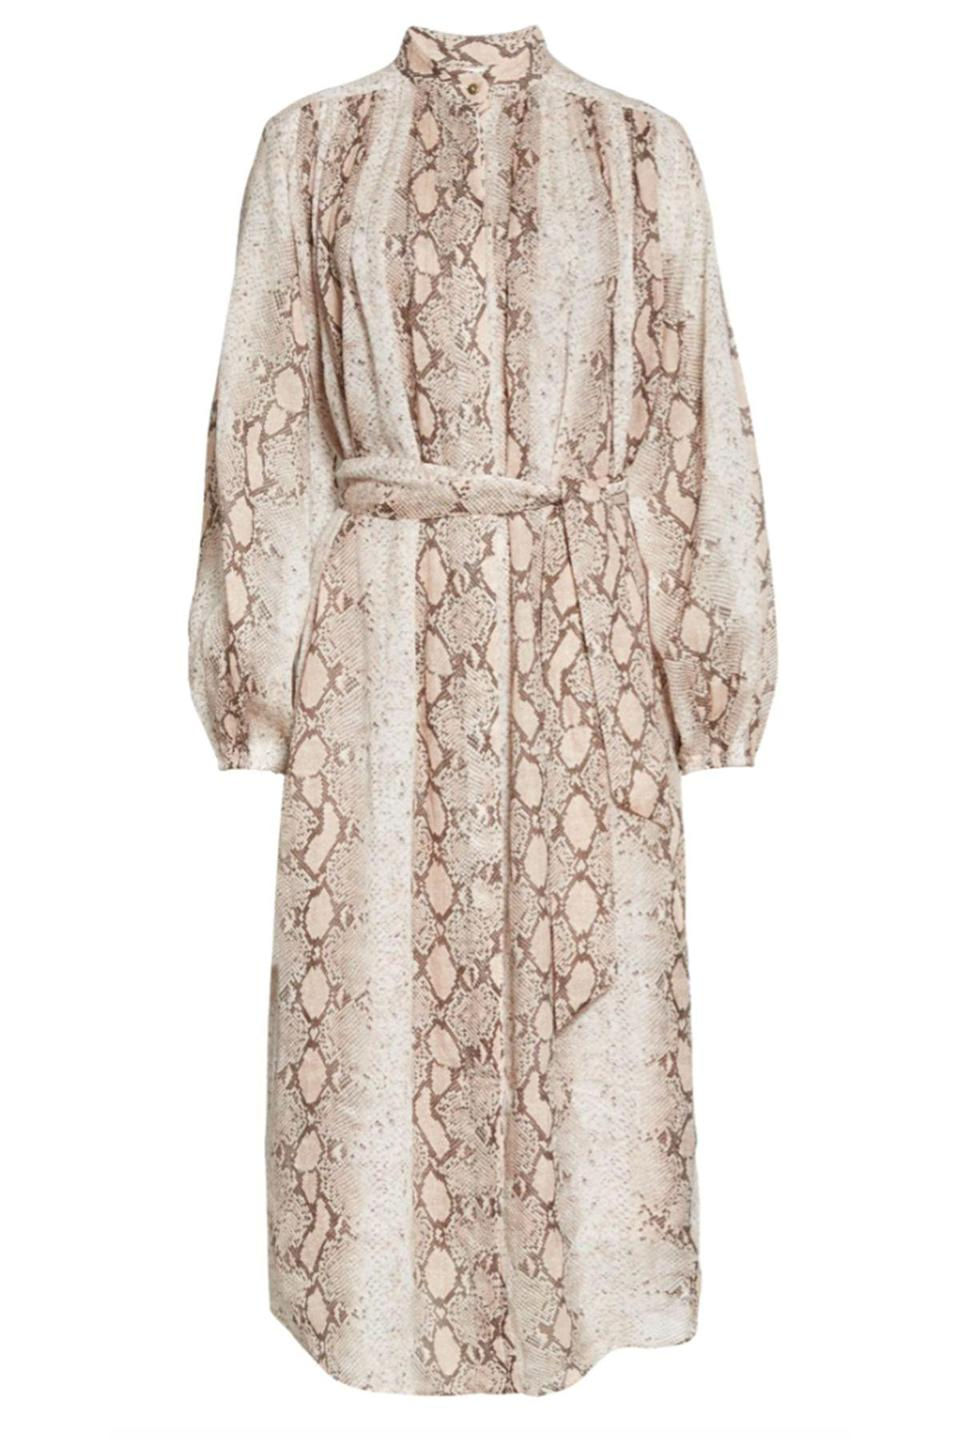 "<p><strong>Zimmermann</strong></p><p>nordstrom.com</p><p><strong>$695.00</strong></p><p><a href=""https://go.redirectingat.com?id=74968X1596630&url=https%3A%2F%2Fwww.nordstrom.com%2Fs%2Fzimmermann-bellitude-snake-print-long-sleeve-shirtdress%2F5594517&sref=https%3A%2F%2Fwww.townandcountrymag.com%2Fstyle%2Ffashion-trends%2Fg35206164%2Fbest-shirt-dress-styles%2F"" rel=""nofollow noopener"" target=""_blank"" data-ylk=""slk:Shop Now"" class=""link rapid-noclick-resp"">Shop Now</a></p><p>Animal-print fanatics will love this neutral pattern. </p>"